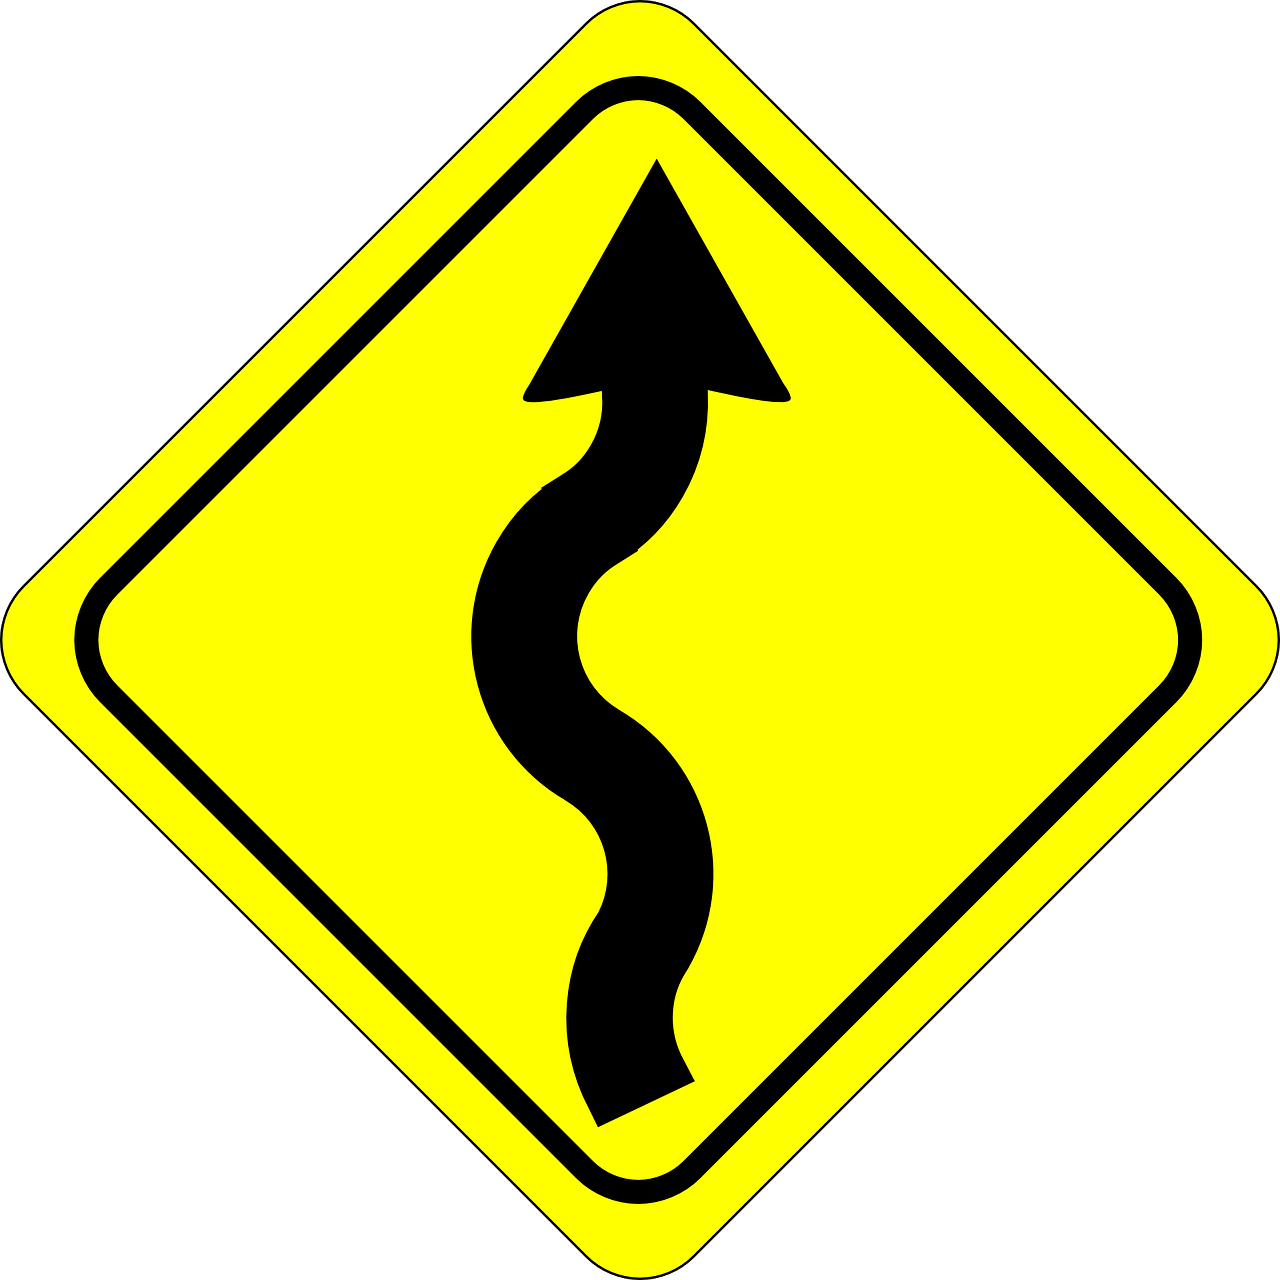 curvy road sign crooked road sign warning sign free photo